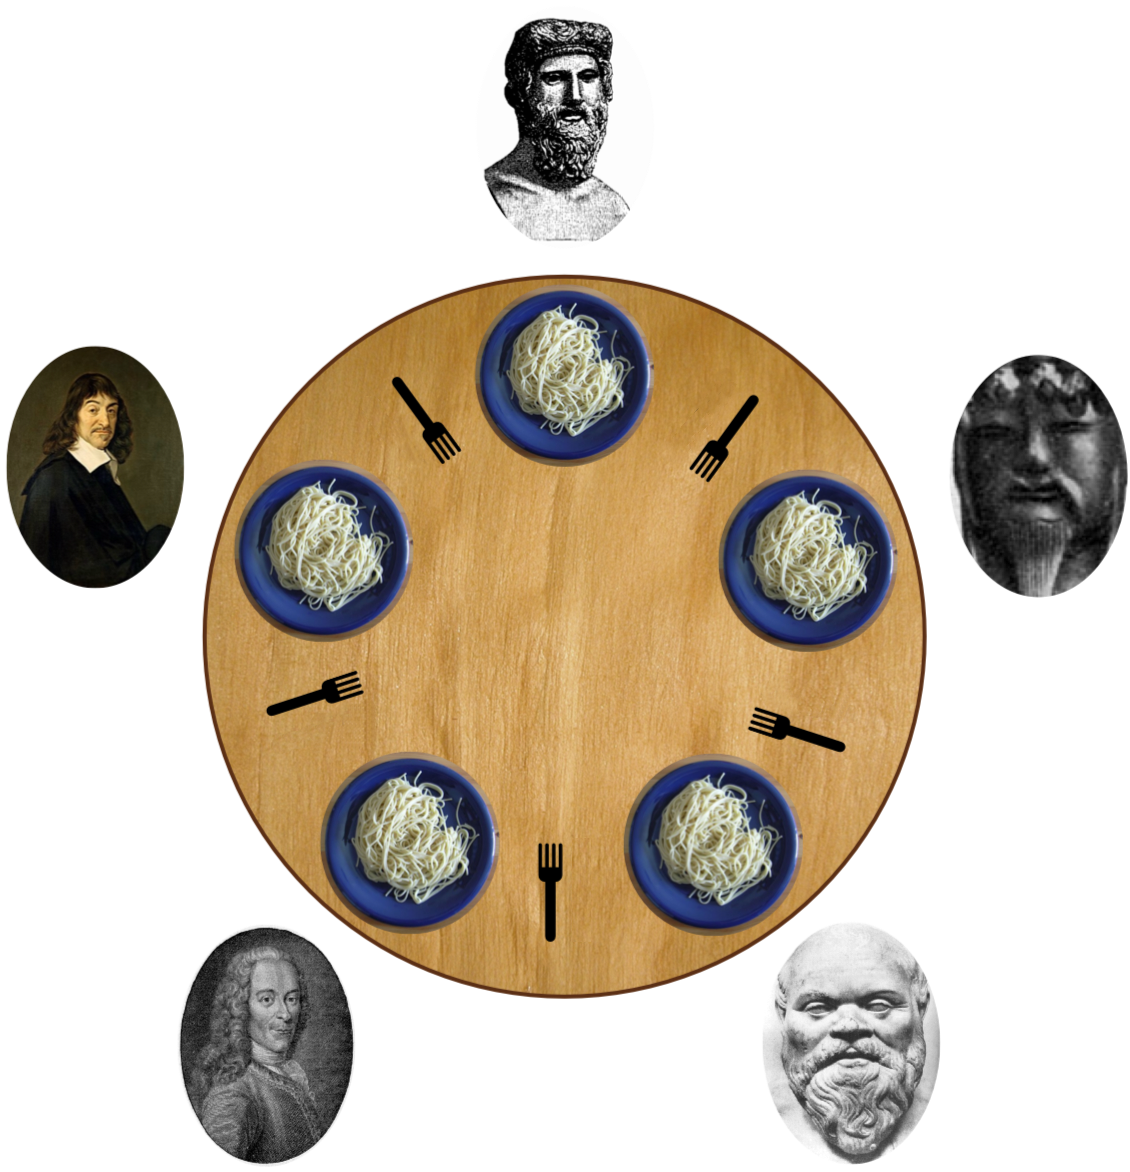 Five dining philosophers